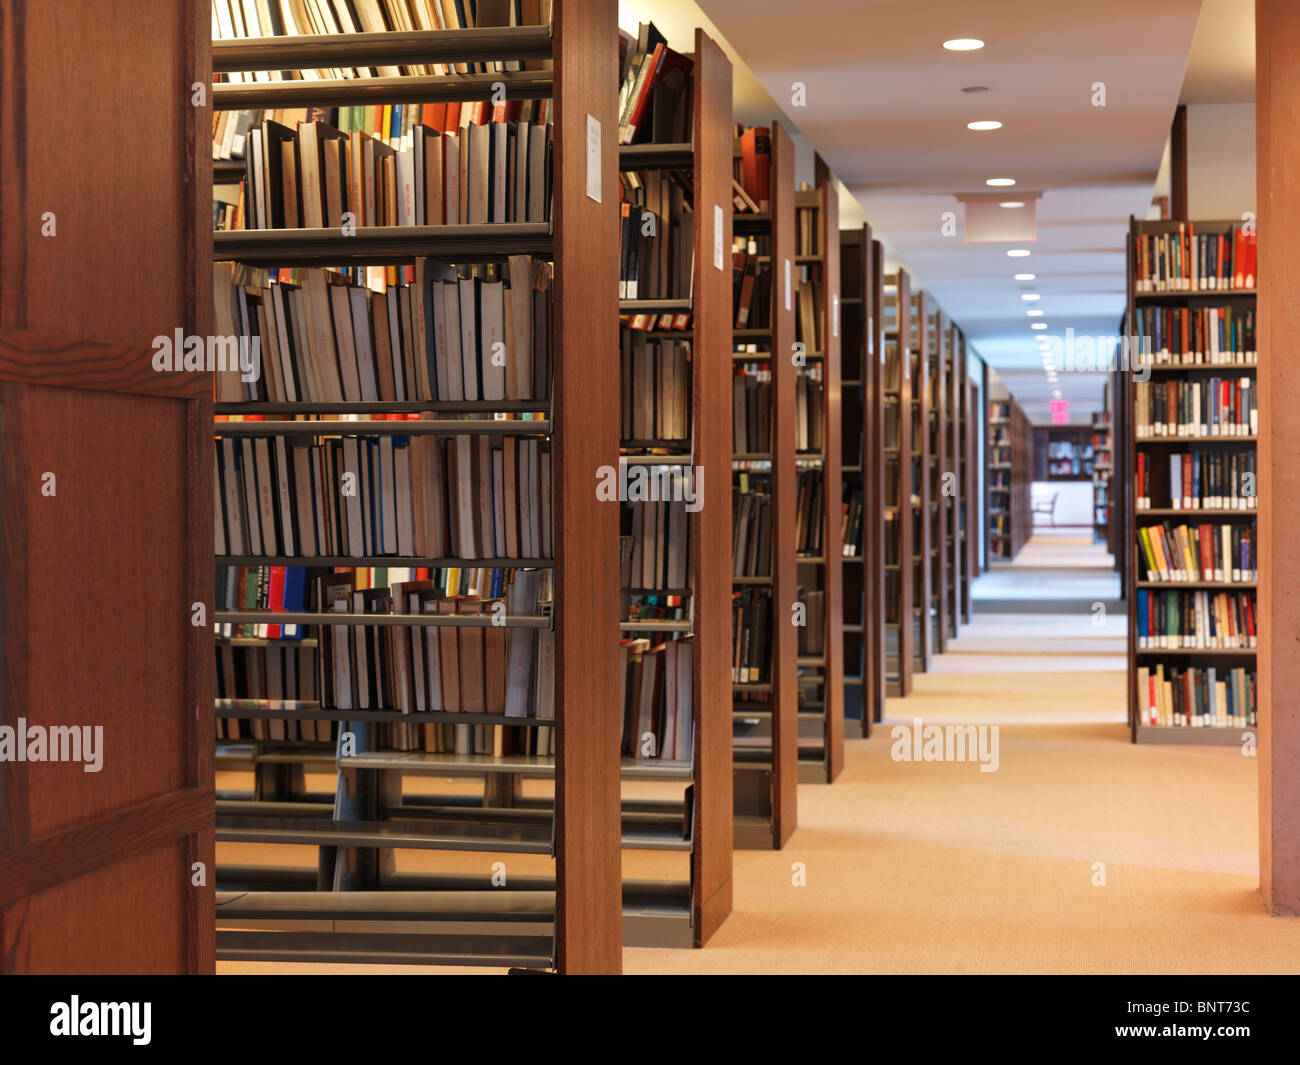 rows of bookshelves in a library stock image - Library Bookshelves